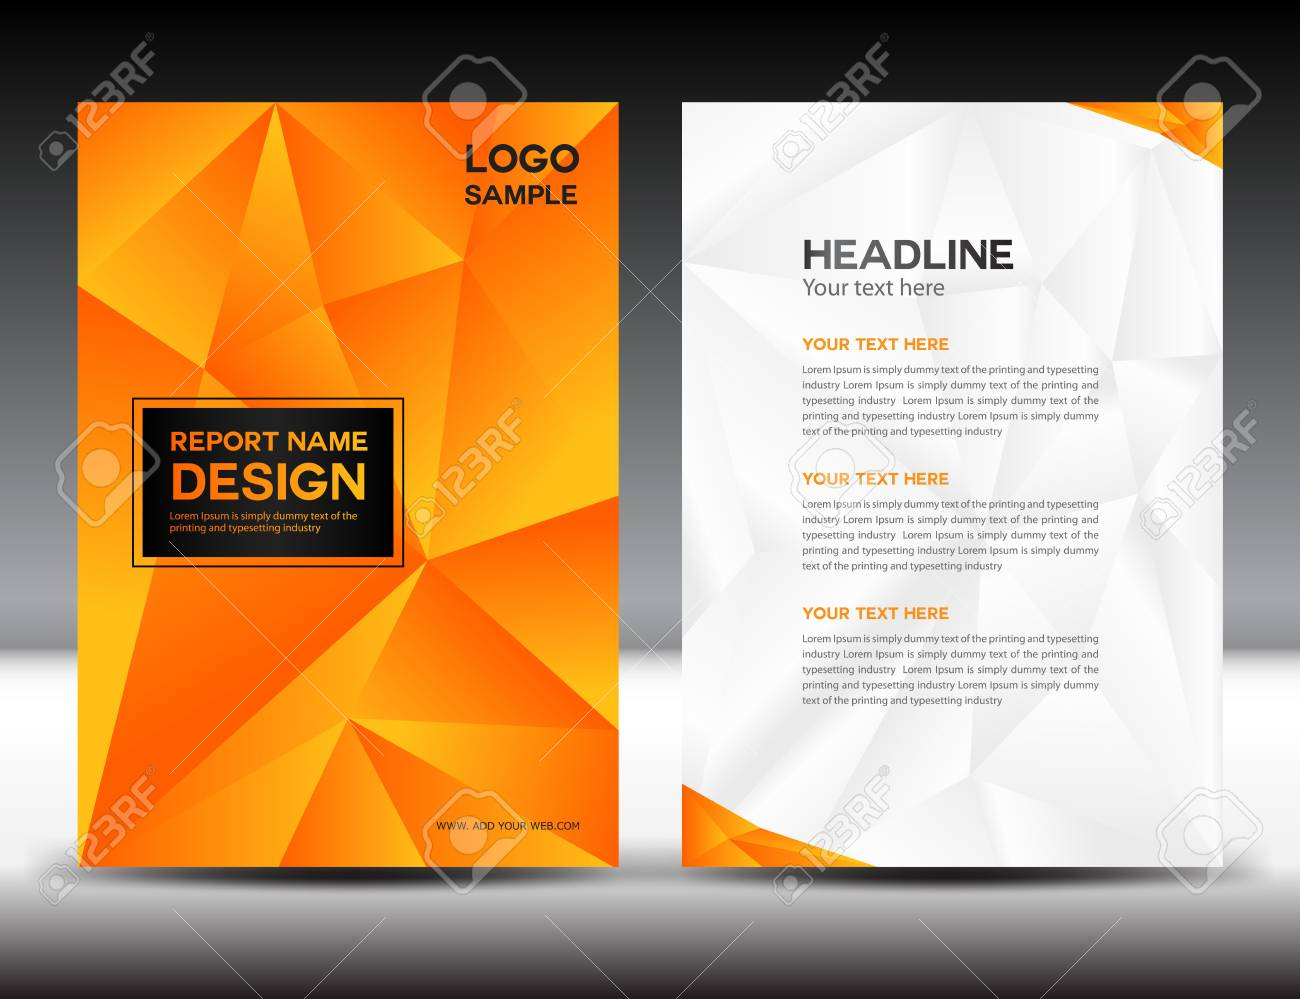 Orange Cover Annual Report Design Illustration,cover Design, Brochure Design,  Template Design,  Annual Report Template Design